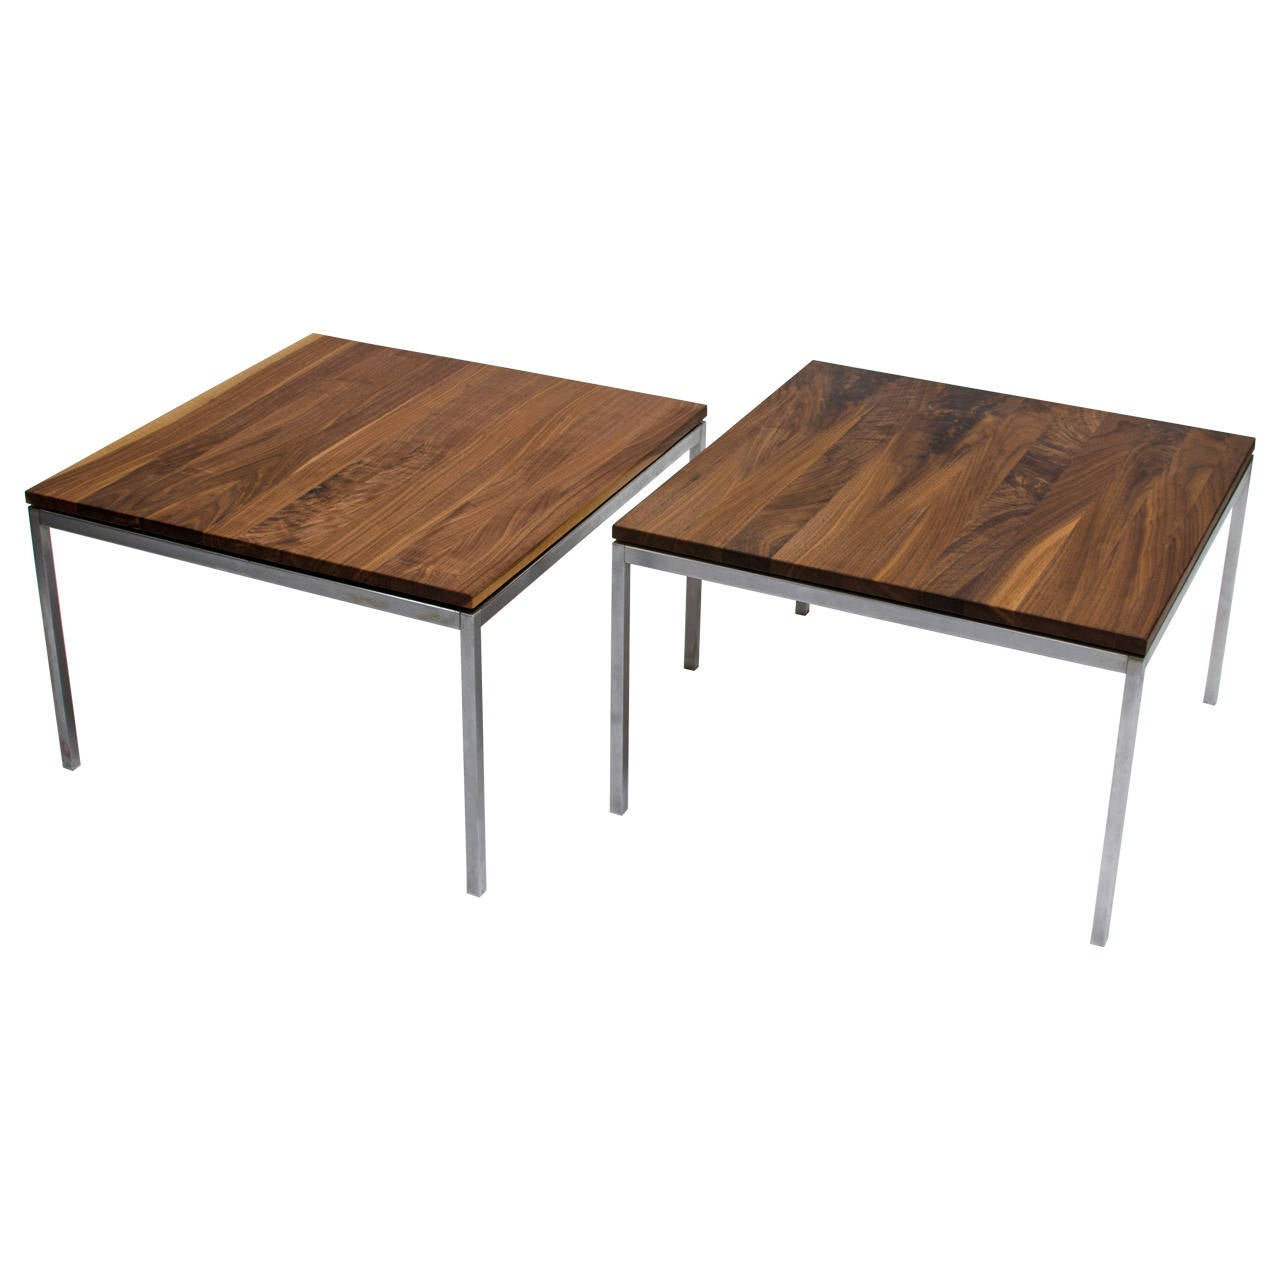 Florence Knoll Solid Steel And Walnut Floating Top Coffee Or Side Table 1950s At 1stdibs